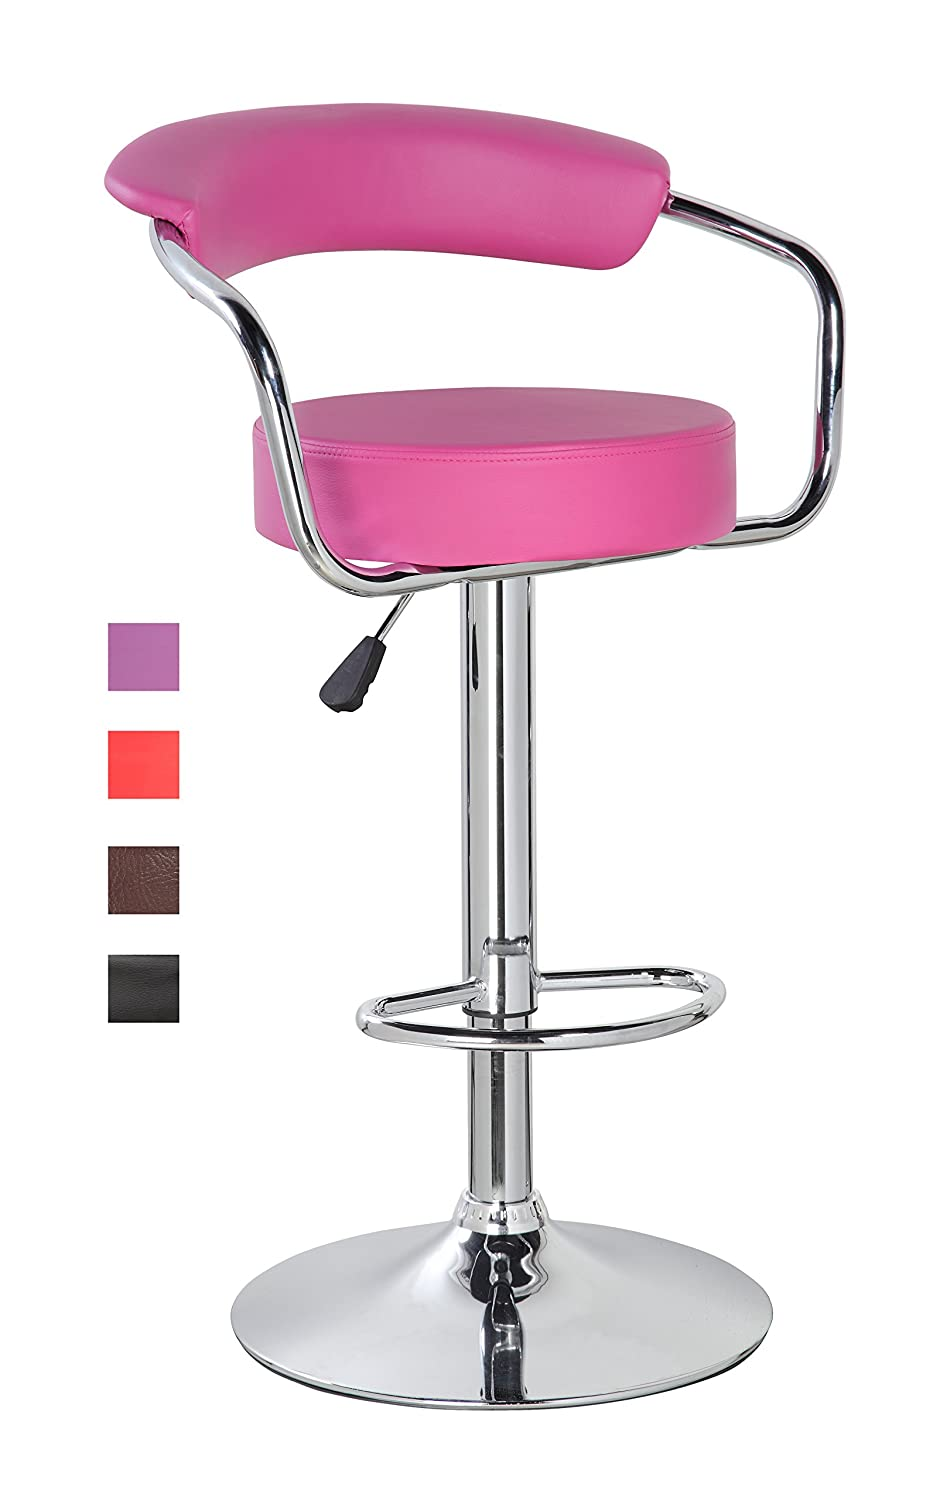 Amazon.com KERLAND PU Leather Swivel Adjustable Seat Height Home Kitchen Bar Stool Chair With Padded Back And Chrome Footrest Pink Kitchen u0026 Dining  sc 1 st  Amazon.com & Amazon.com: KERLAND PU Leather Swivel Adjustable Seat Height Home ... islam-shia.org